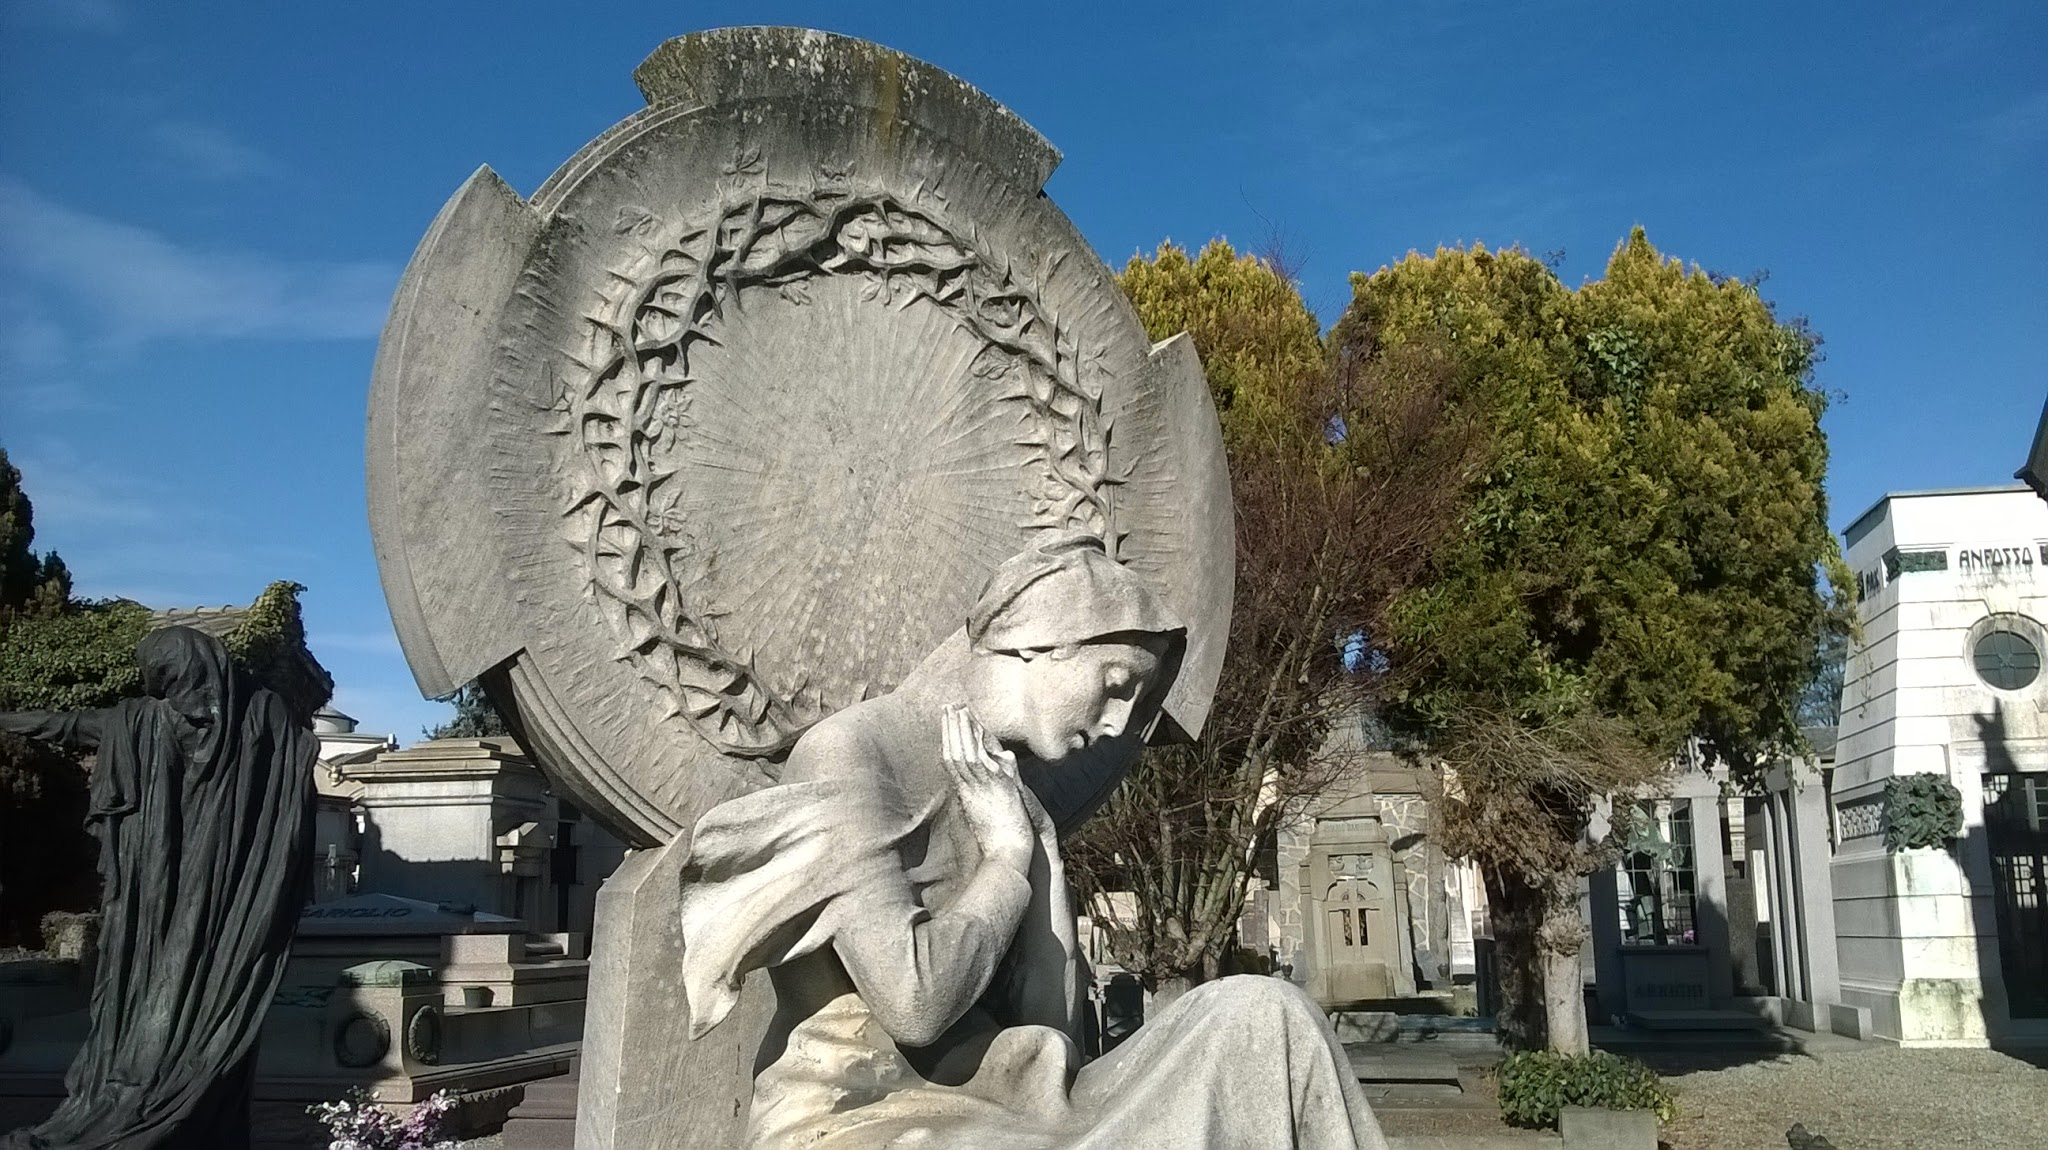 The Monumental Cemetery of Turin (Italy)